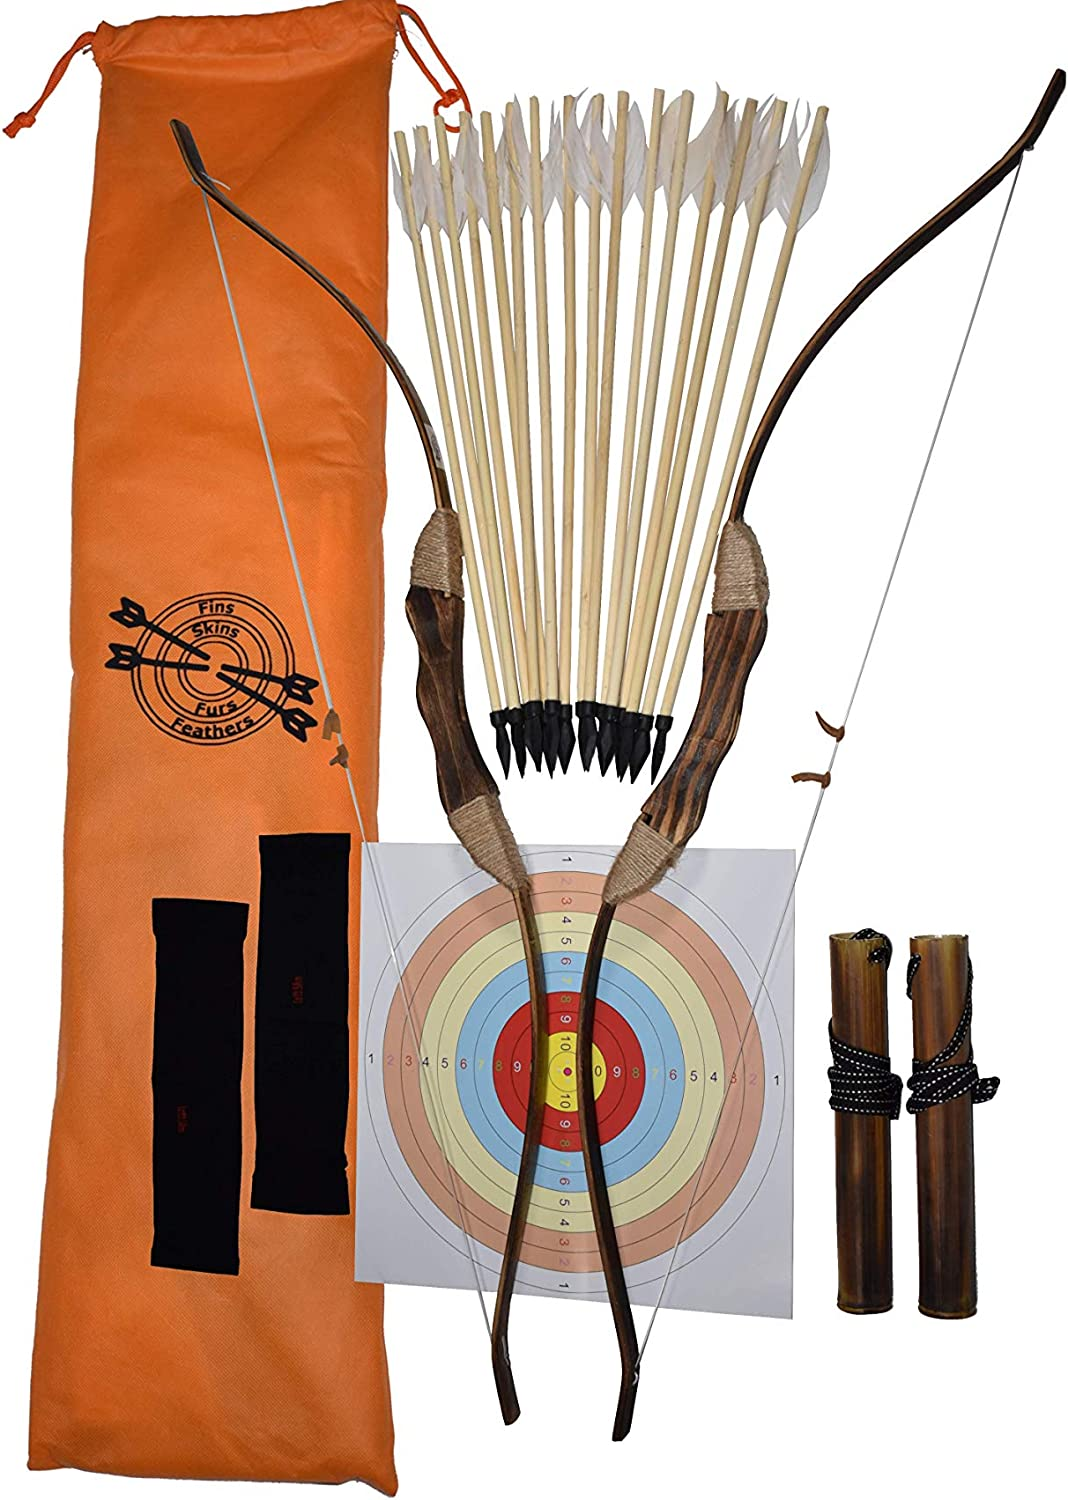 Girl Beginner Archery Set for Kids FSFF Enhanced Wooden Bow and Arrow for Kids 2-Bows 2-Four Arrow quivers 16-Arrows w// Feathers 10-Large Targets /& 2-armguards Great Archery Set for Youth boy